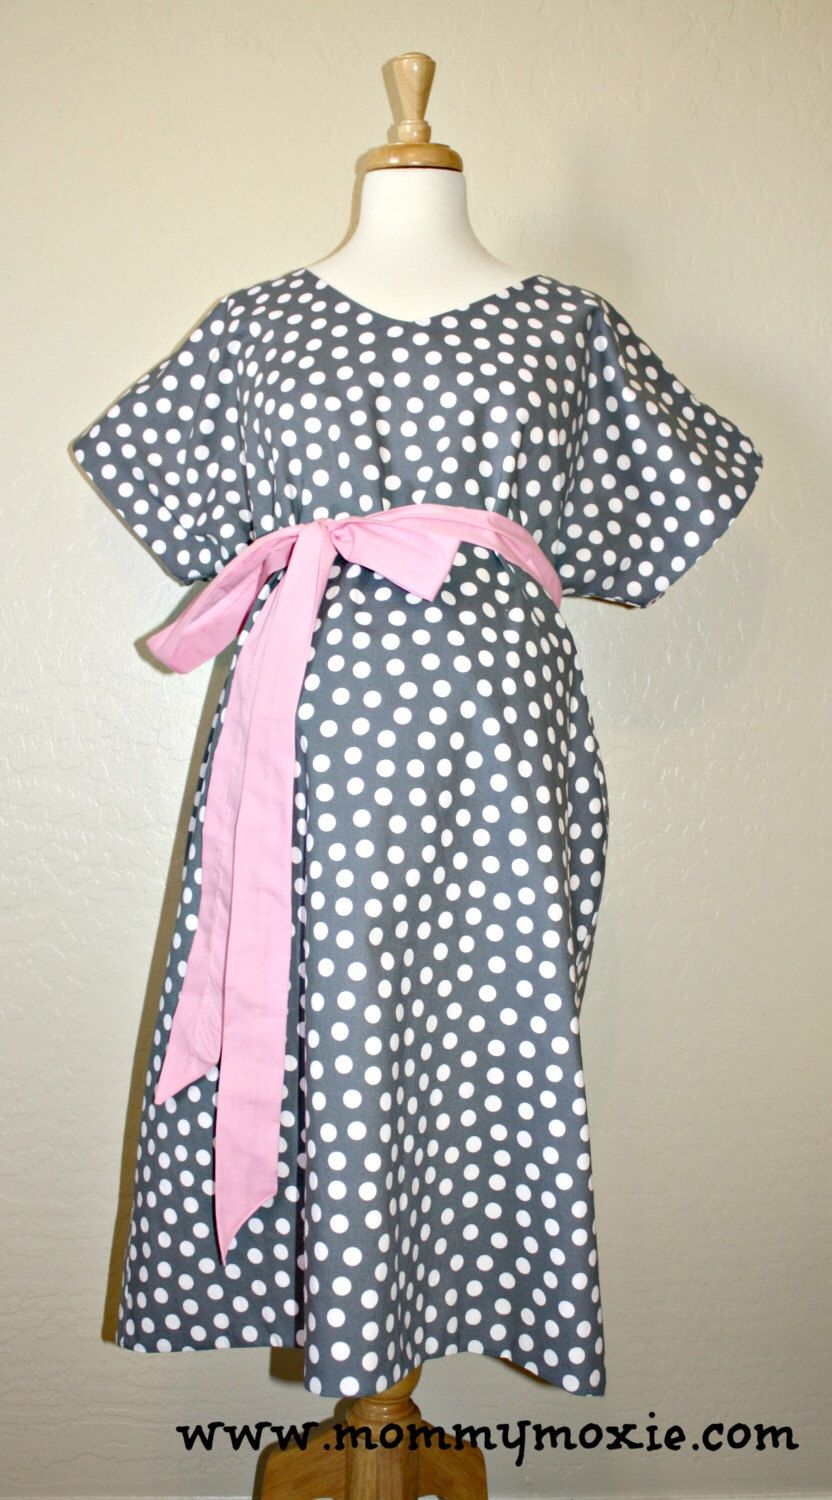 LINED MaddenMiller Maternity Hospital Gown - Grey Polka Dots - Lined ...